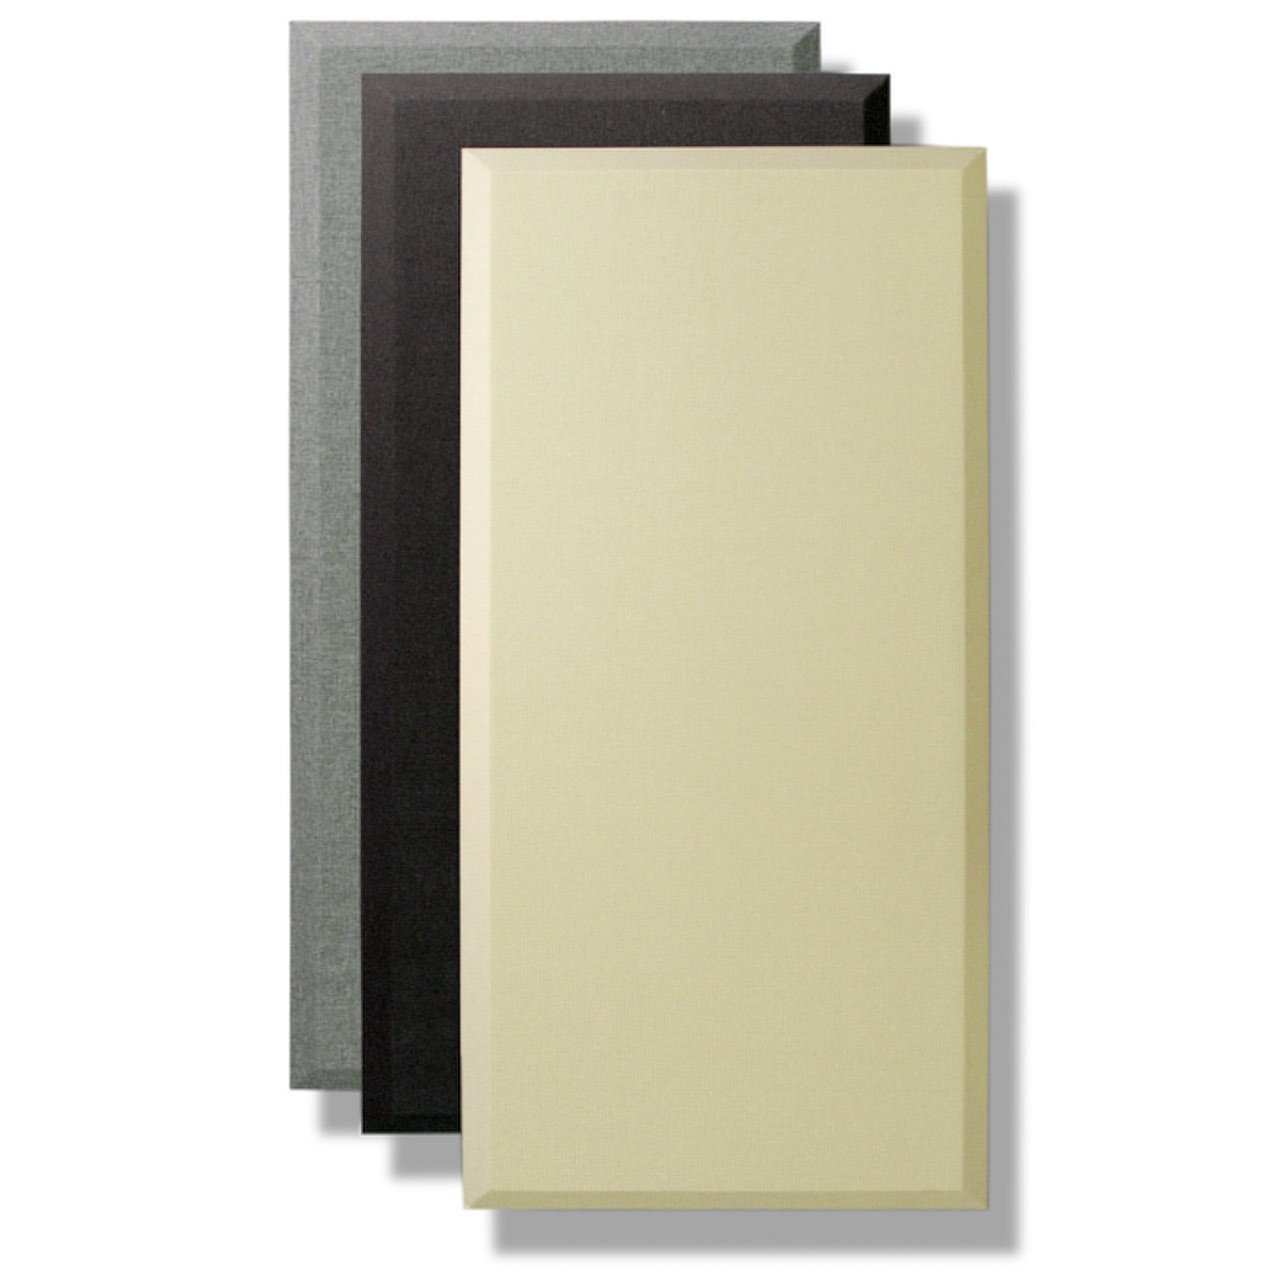 Acoustic Panels - Primacoustic Broadway Broadband Absorbers 24x48x3